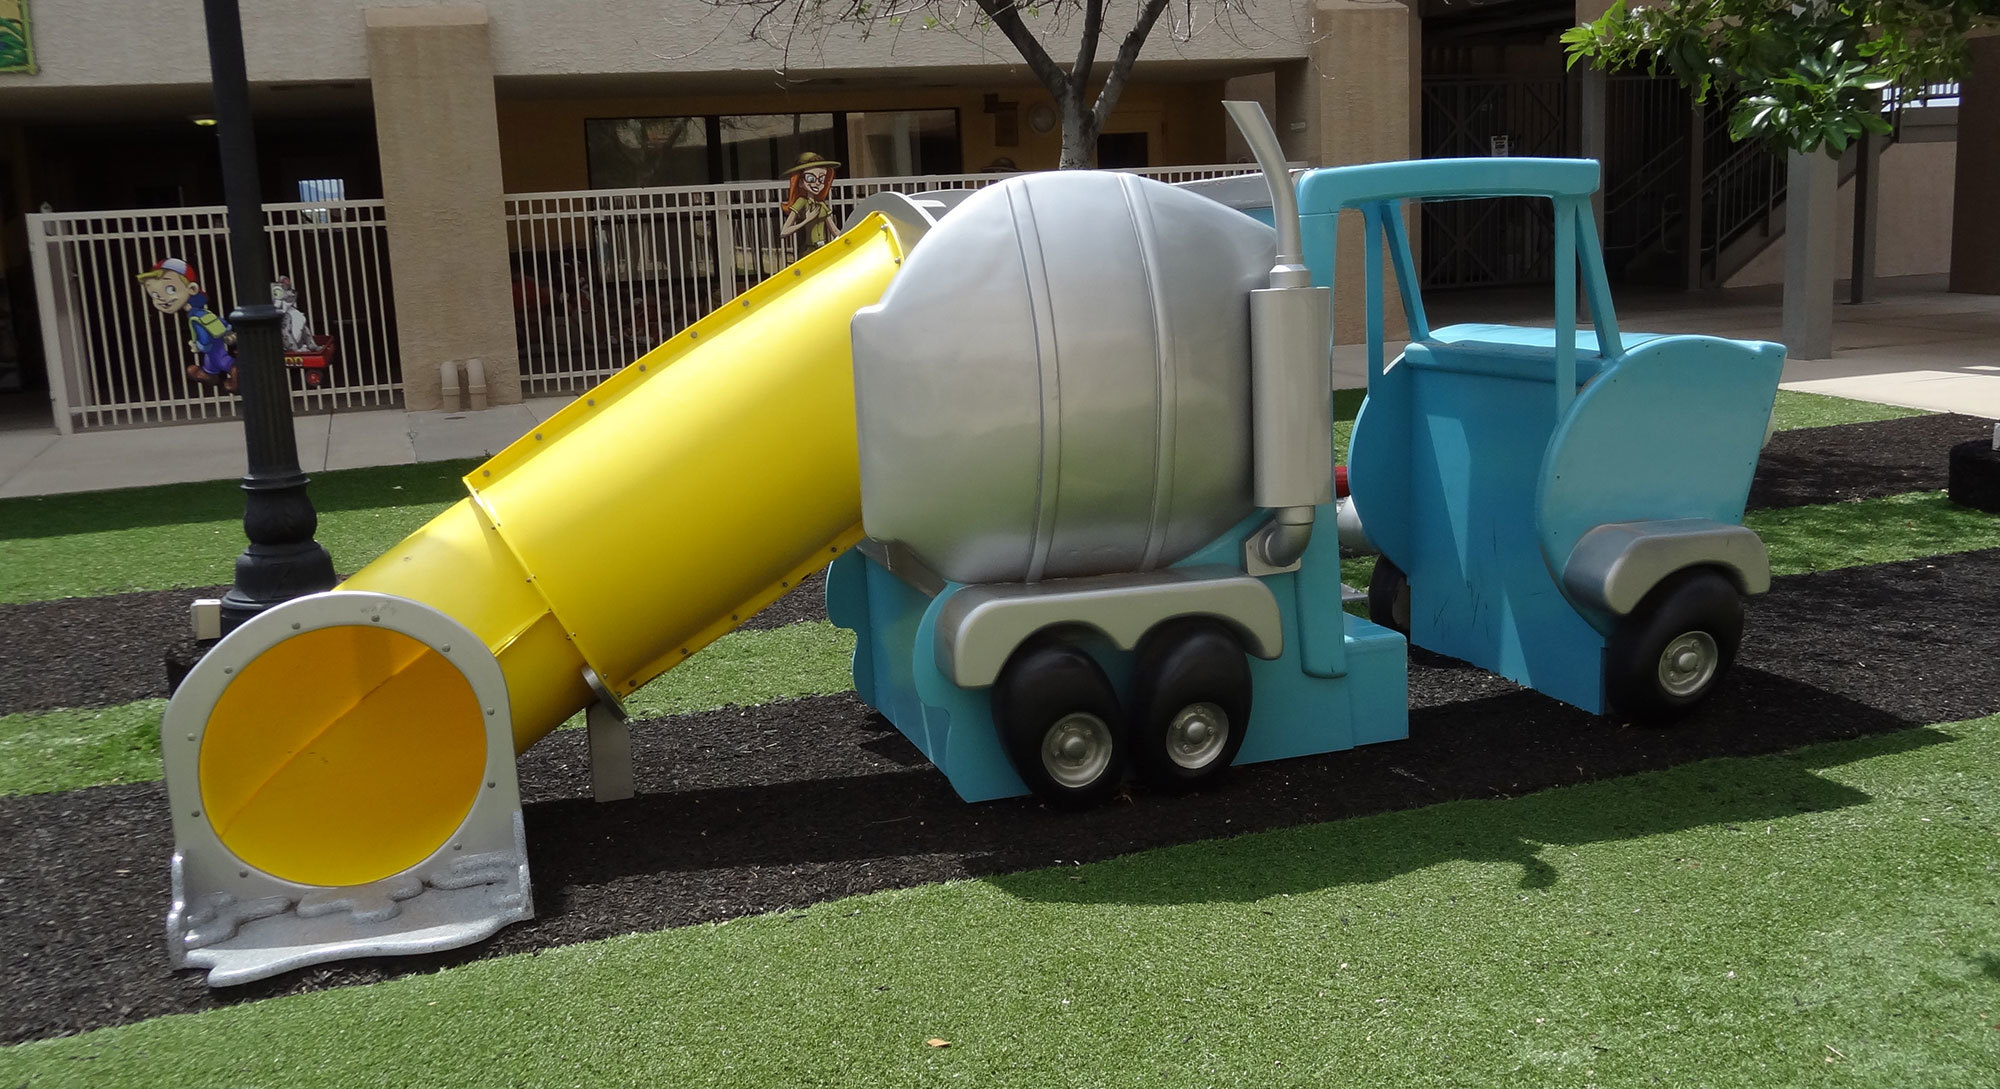 Dumptruck Themed Play Feature in Big City Themed Play Area at Casas Church